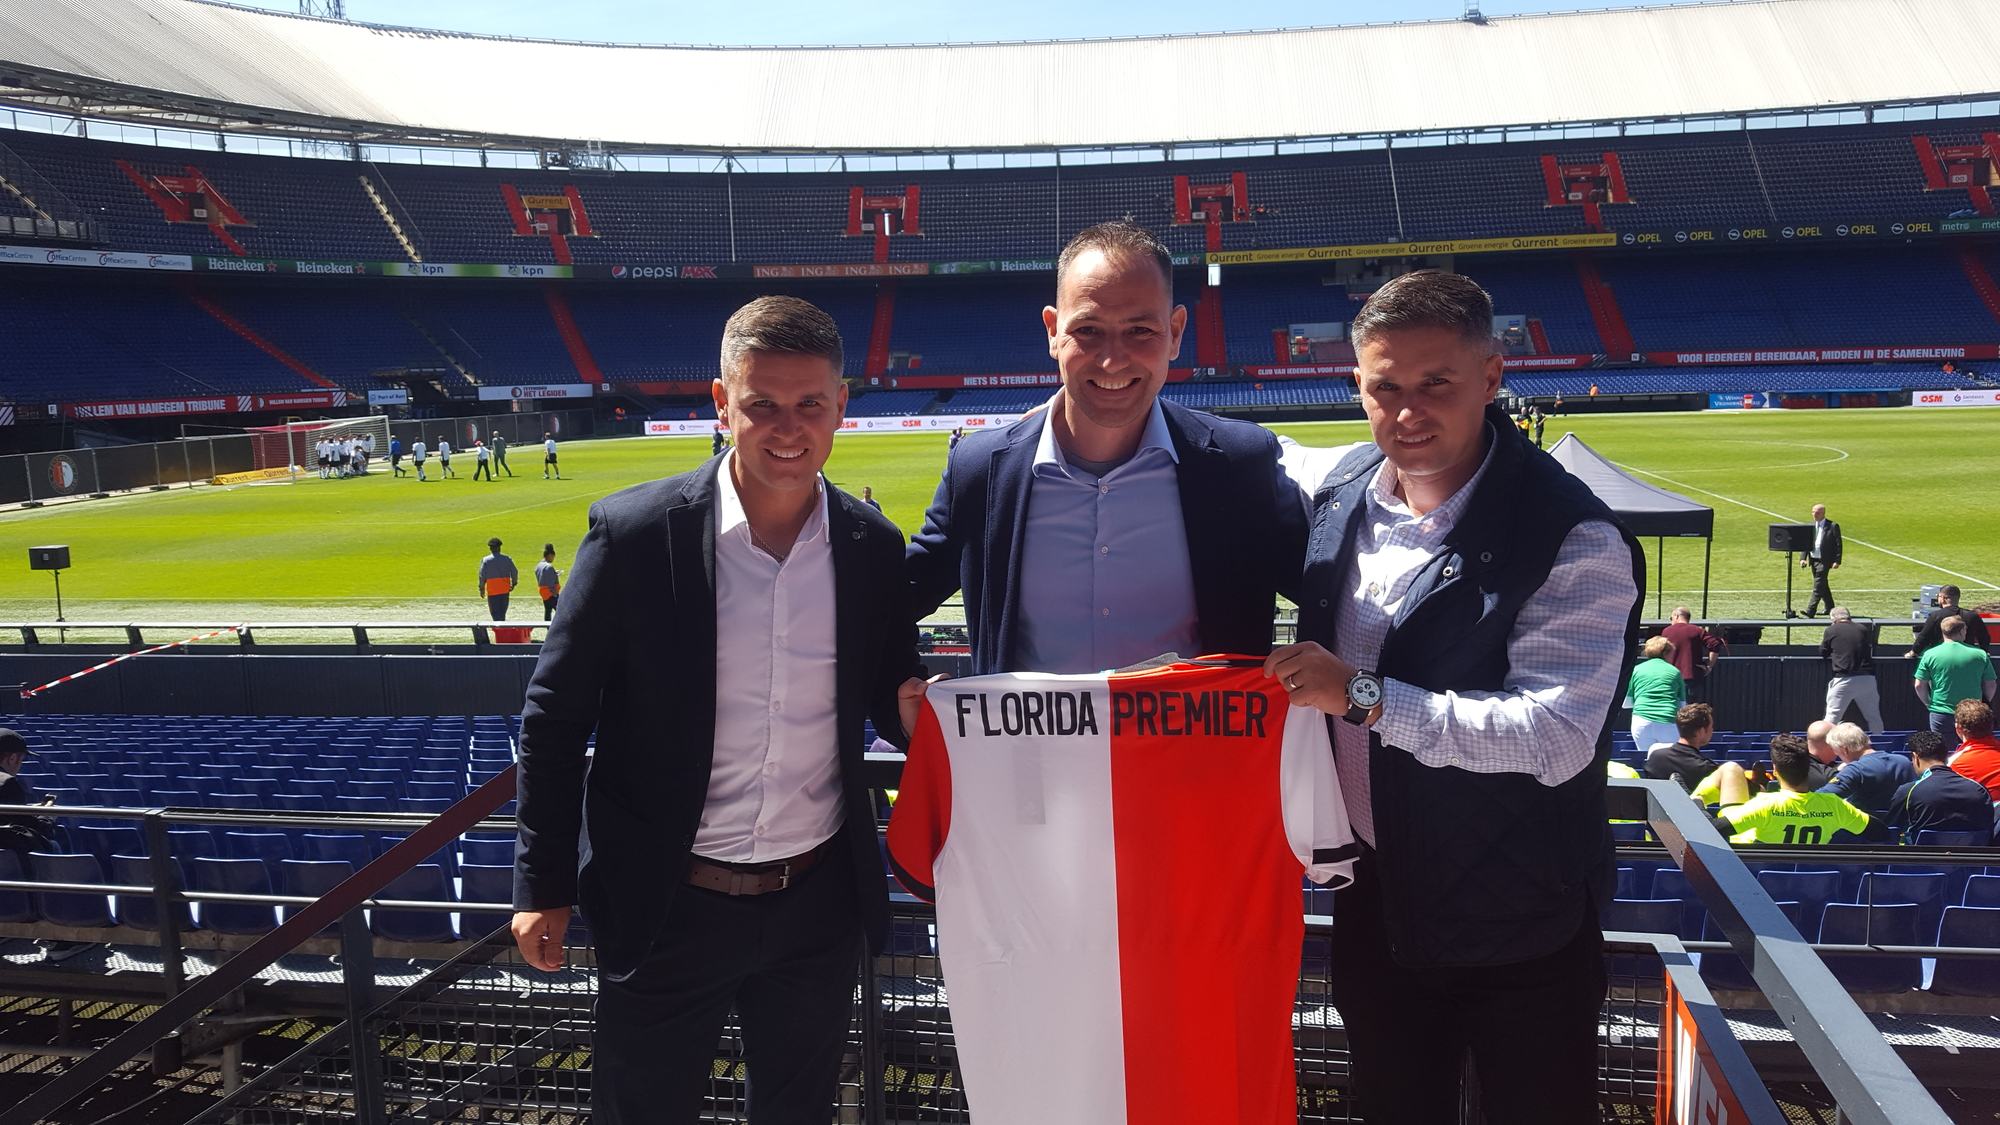 Feyenoord creates a strategic partnership in Florida